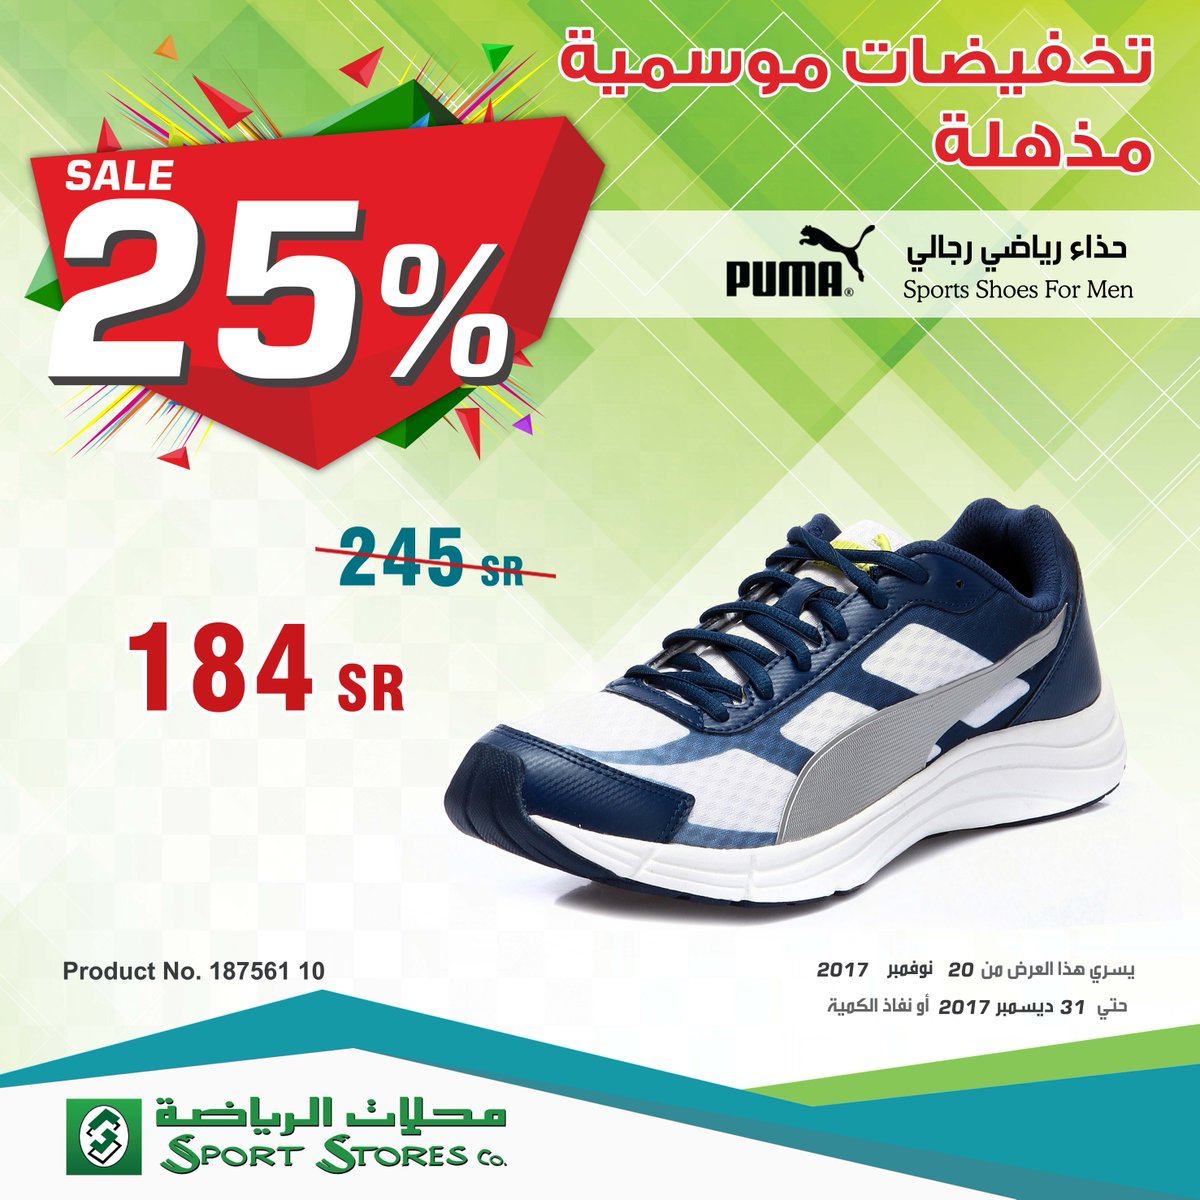 7f04a887a sport stores (@sportstores_sa) | Twitter